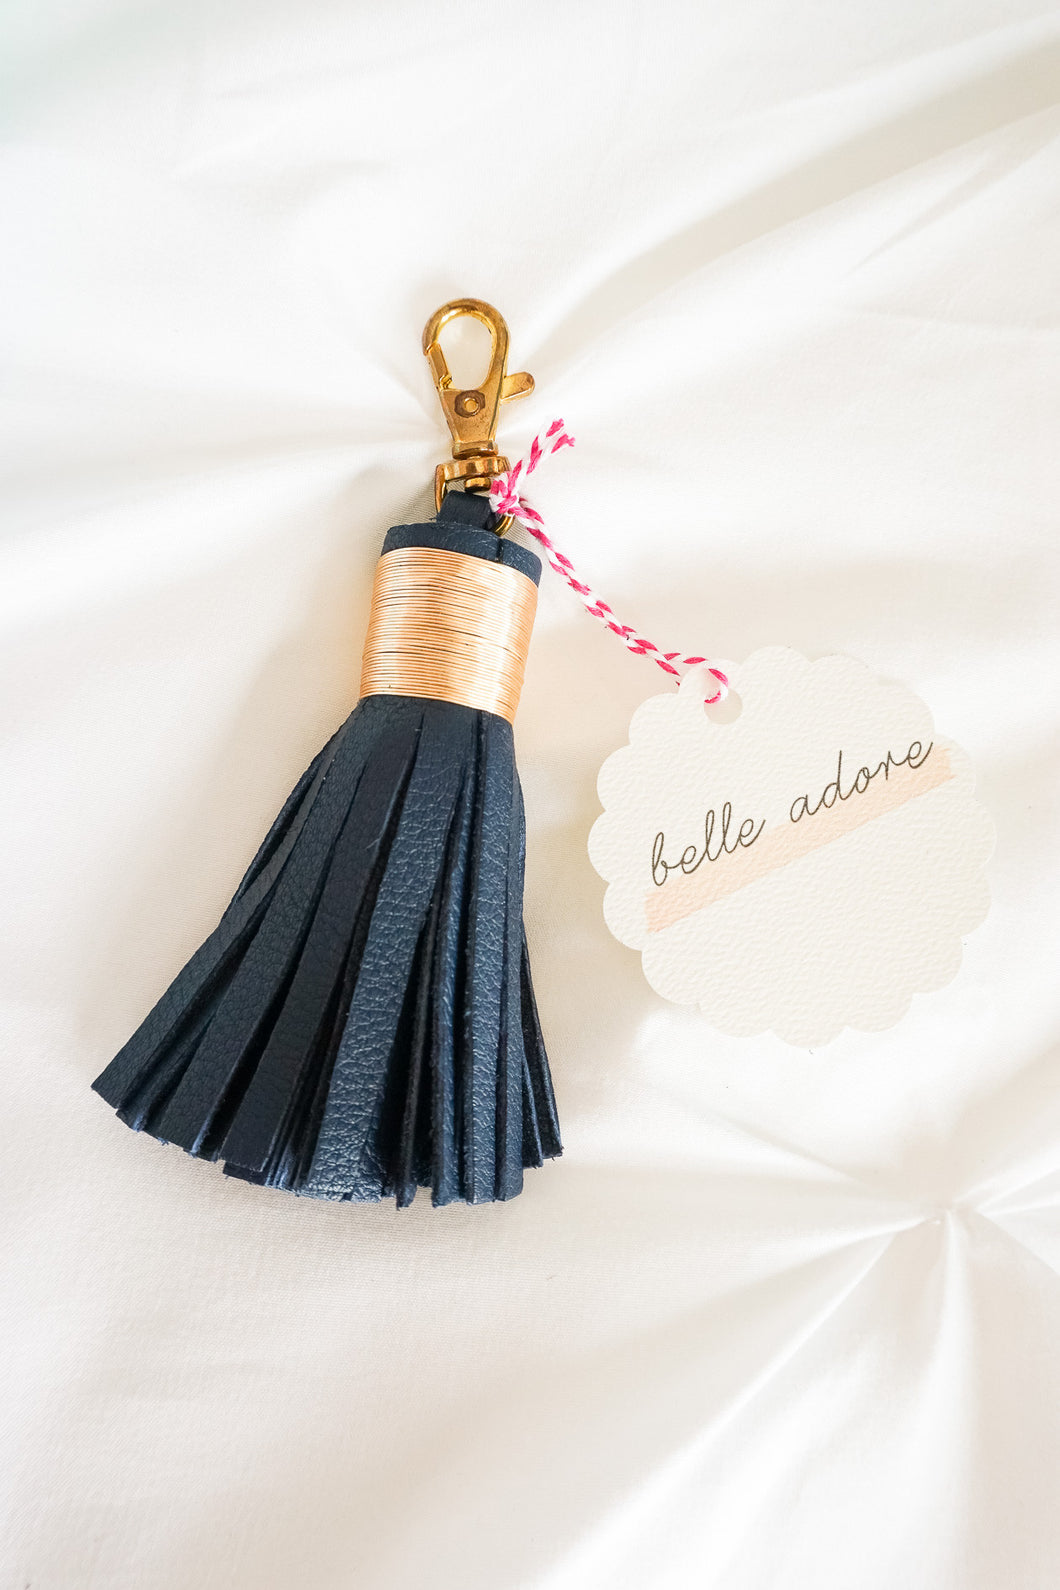 Navy 'Belle Adore' Leather Tassel Keychain